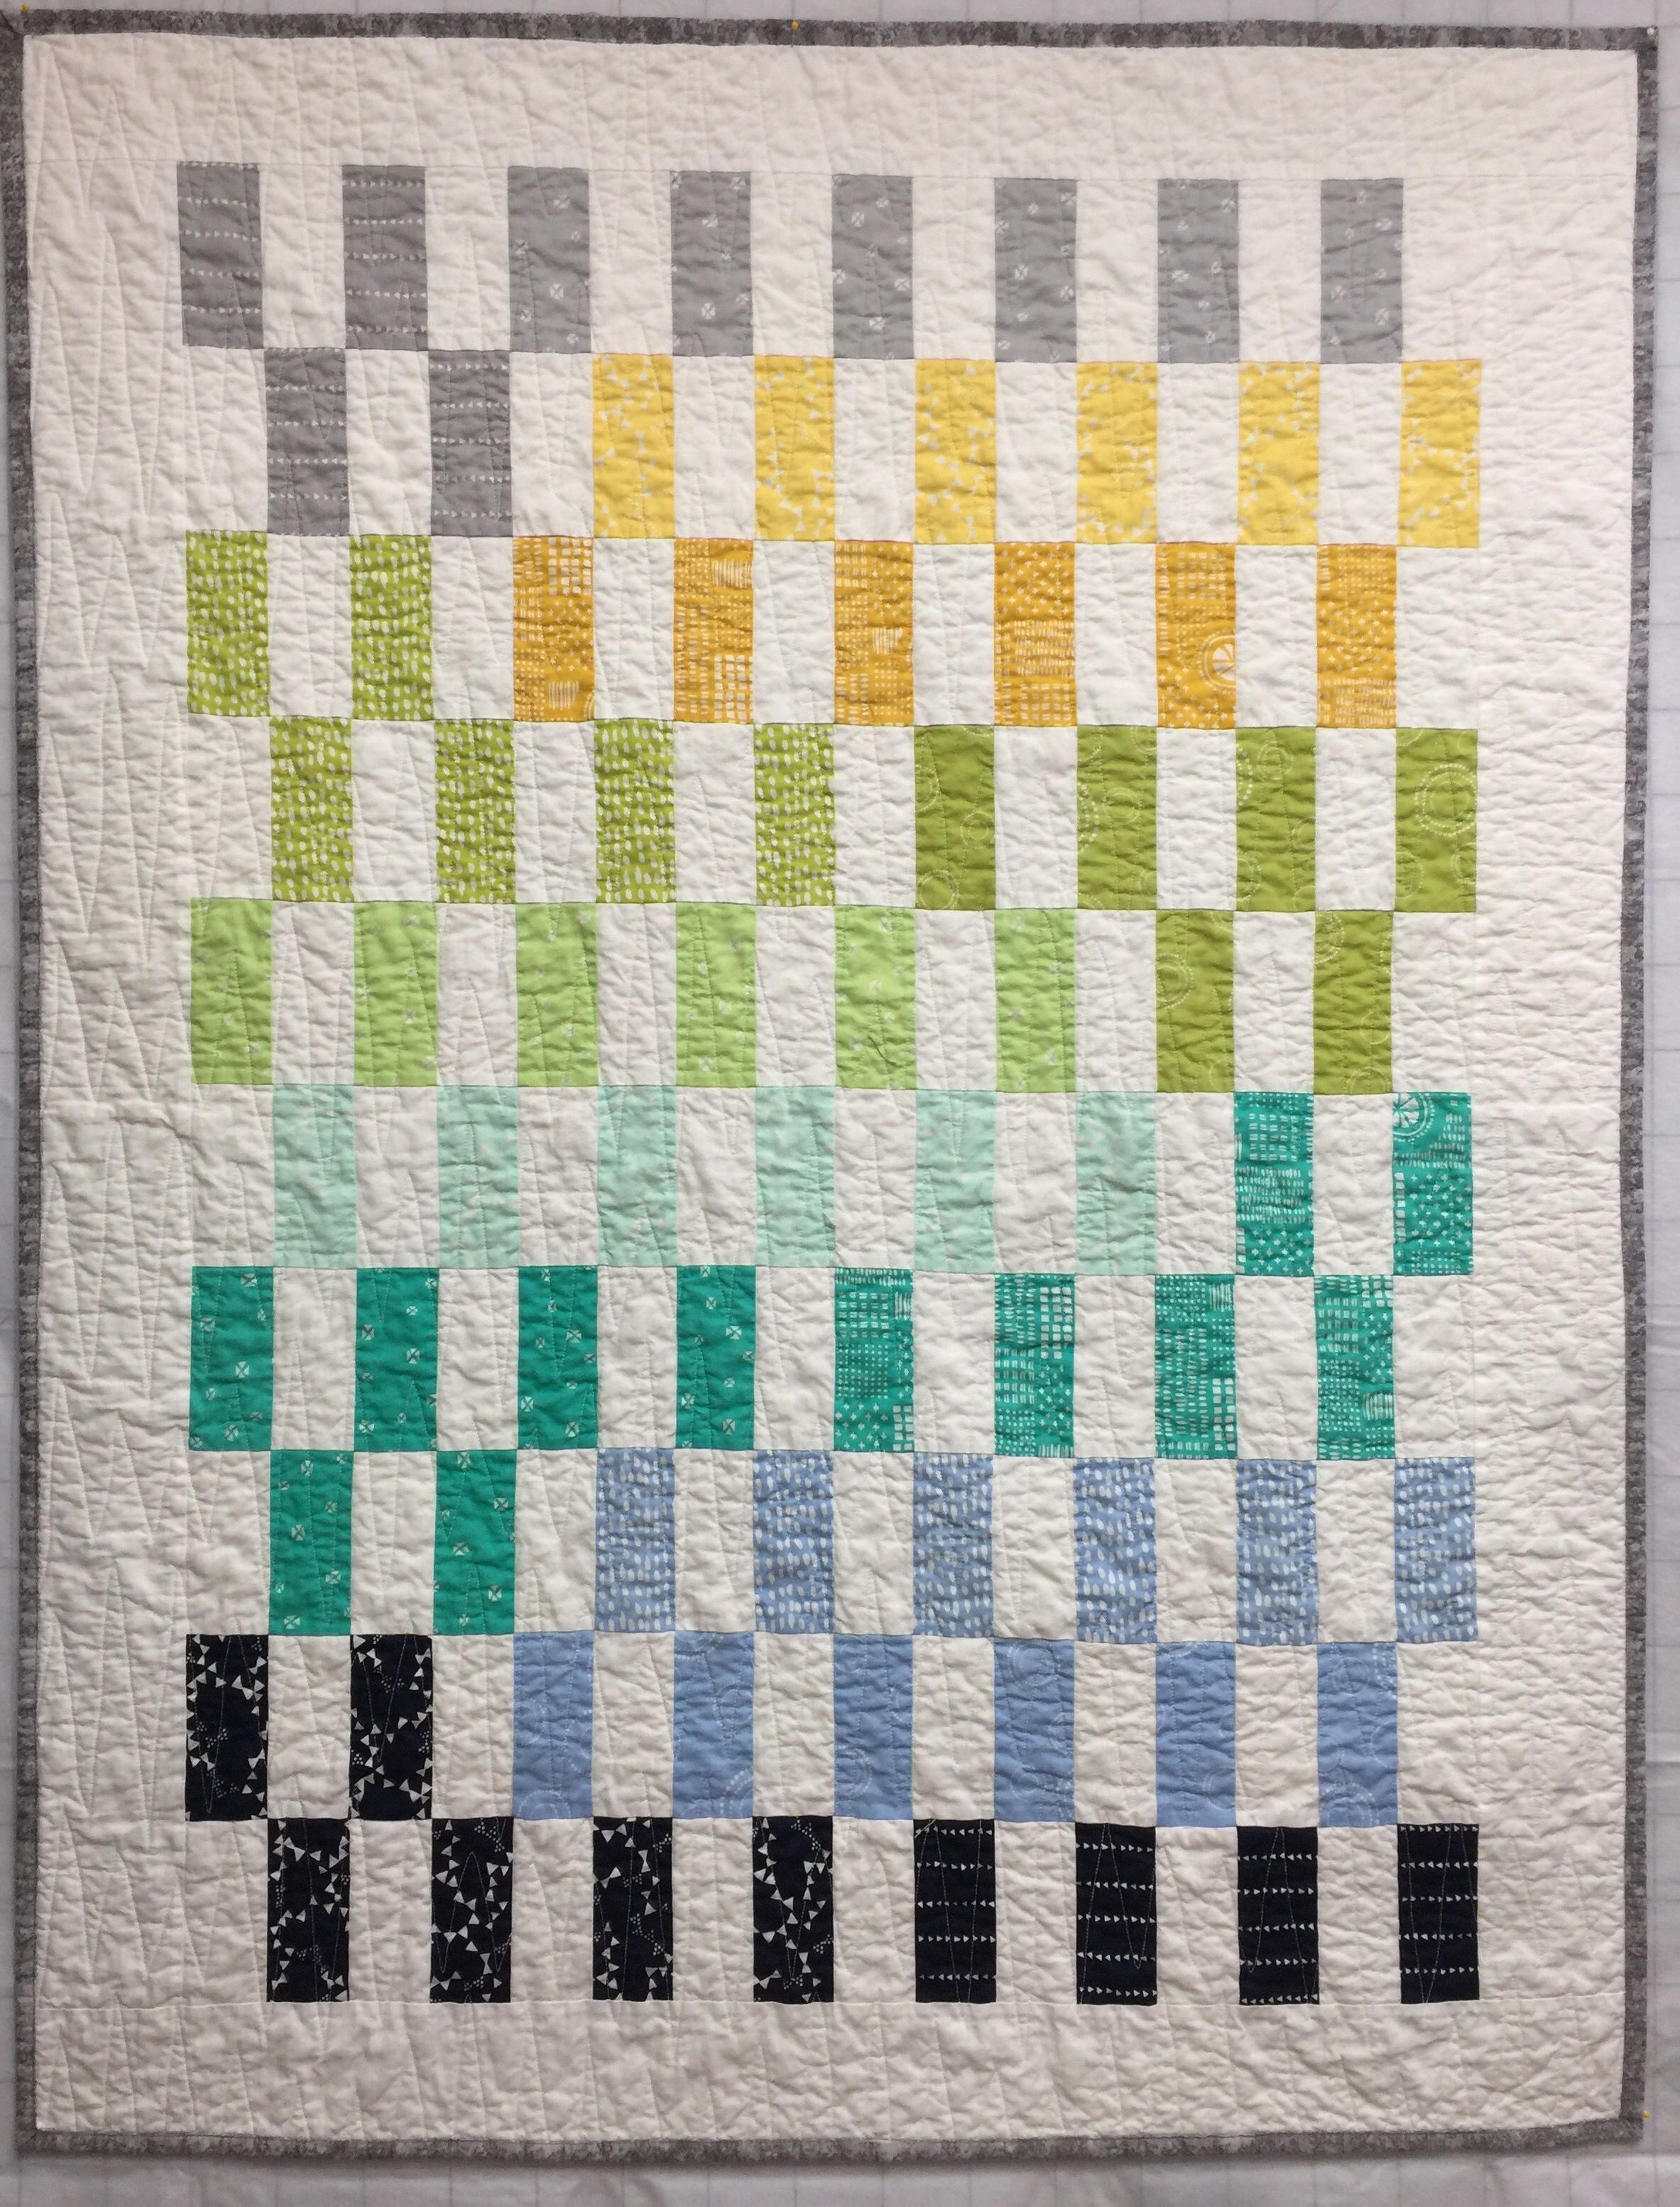 Pin by Donna Calabrese on Quilting Pinterest Babies Fabric